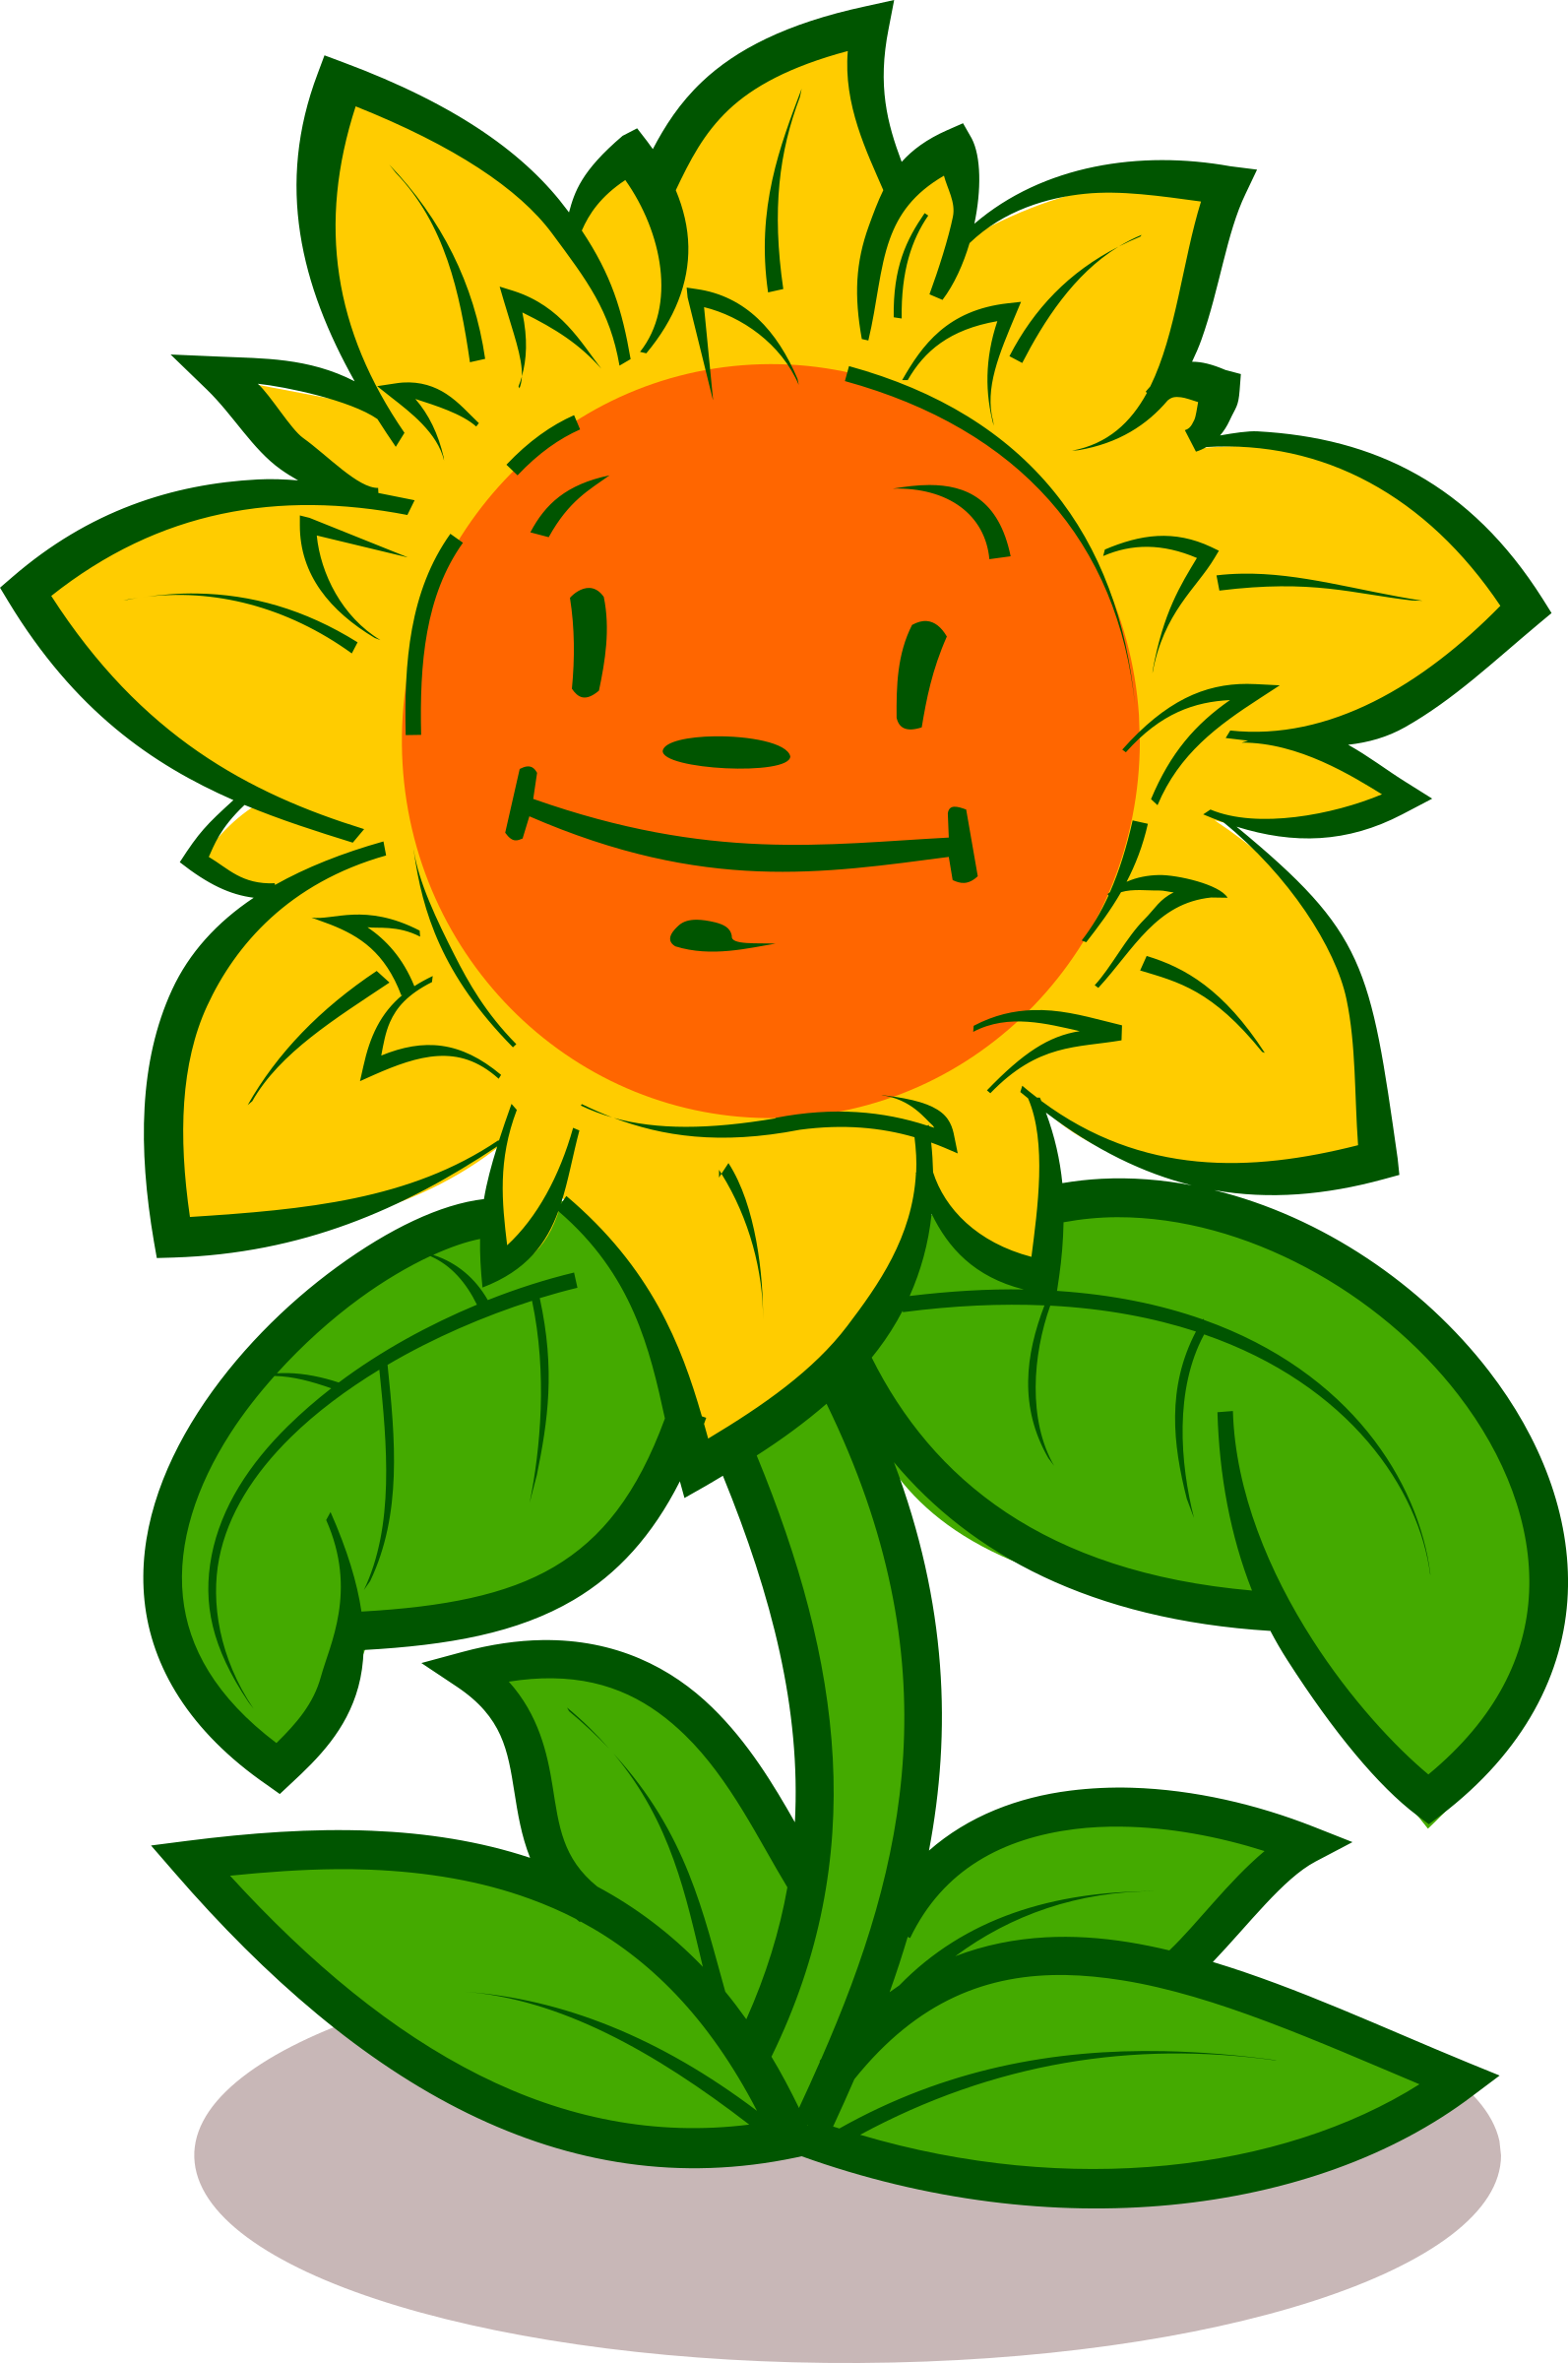 Cute Cartoon Flowers With Faces Drawing Free Image